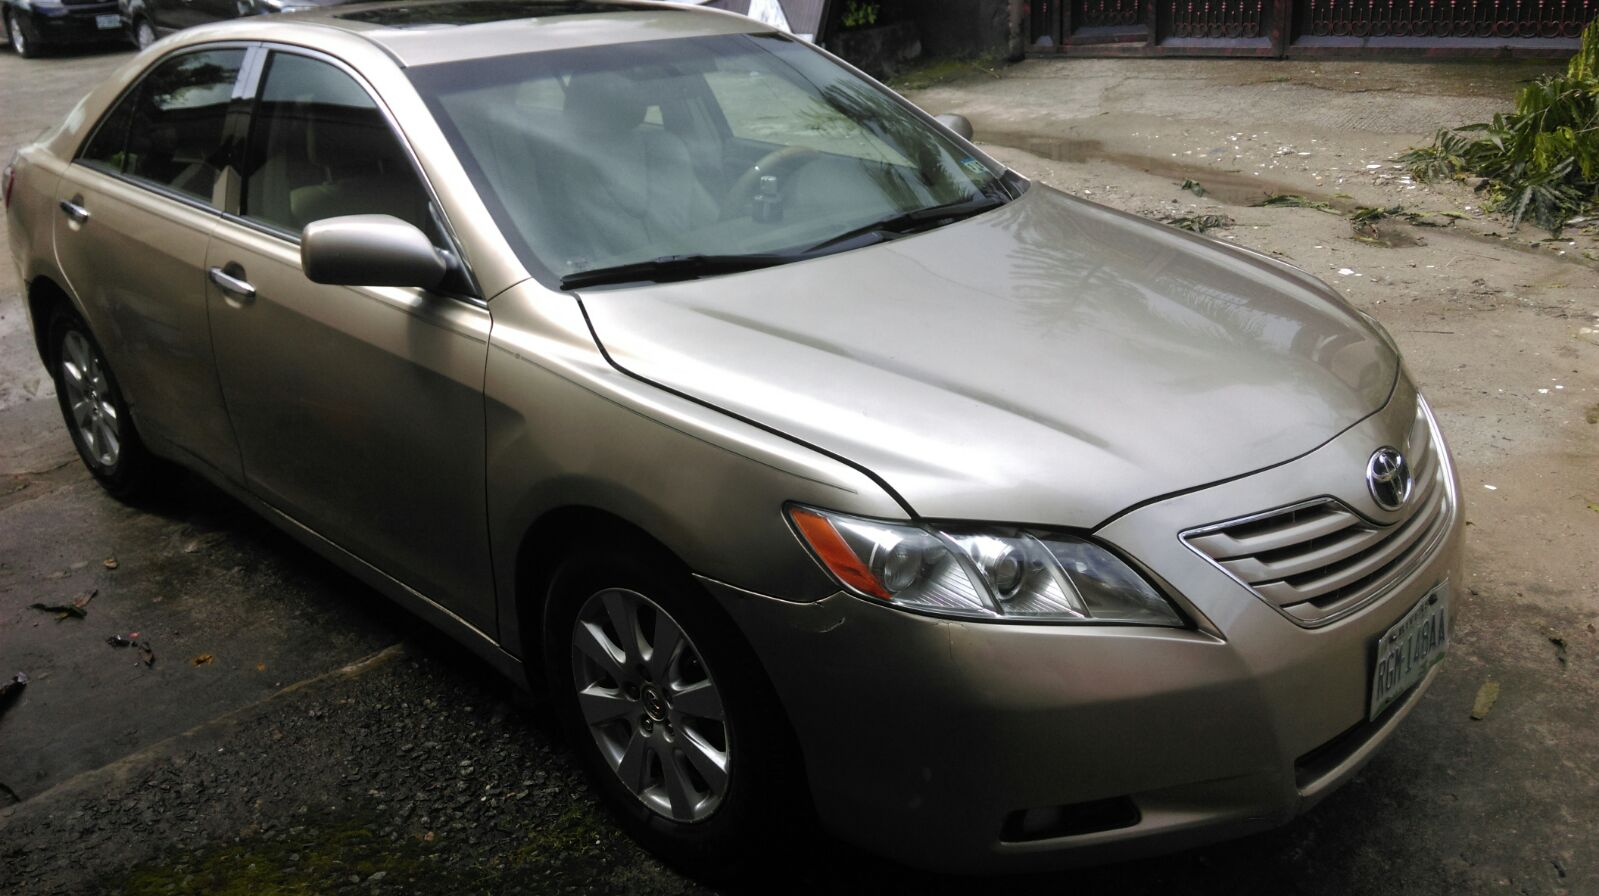 toyota camry 2008 xle nairaland 2008 toyota camry xle push start ignition navigation autos. Black Bedroom Furniture Sets. Home Design Ideas